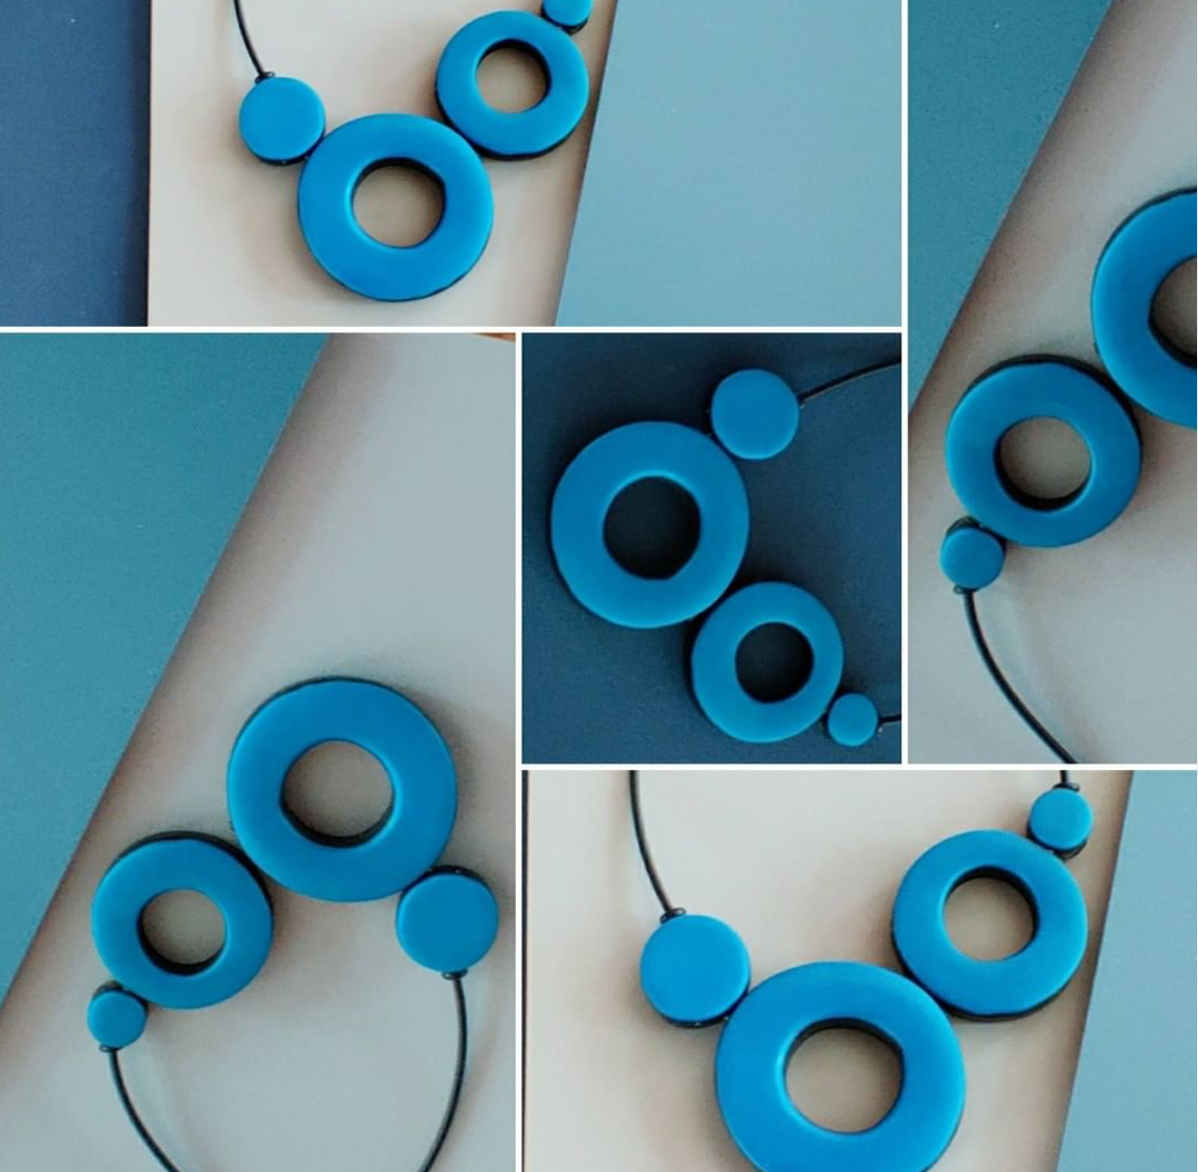 blue polymer clay necklaces by Fiona Herbst